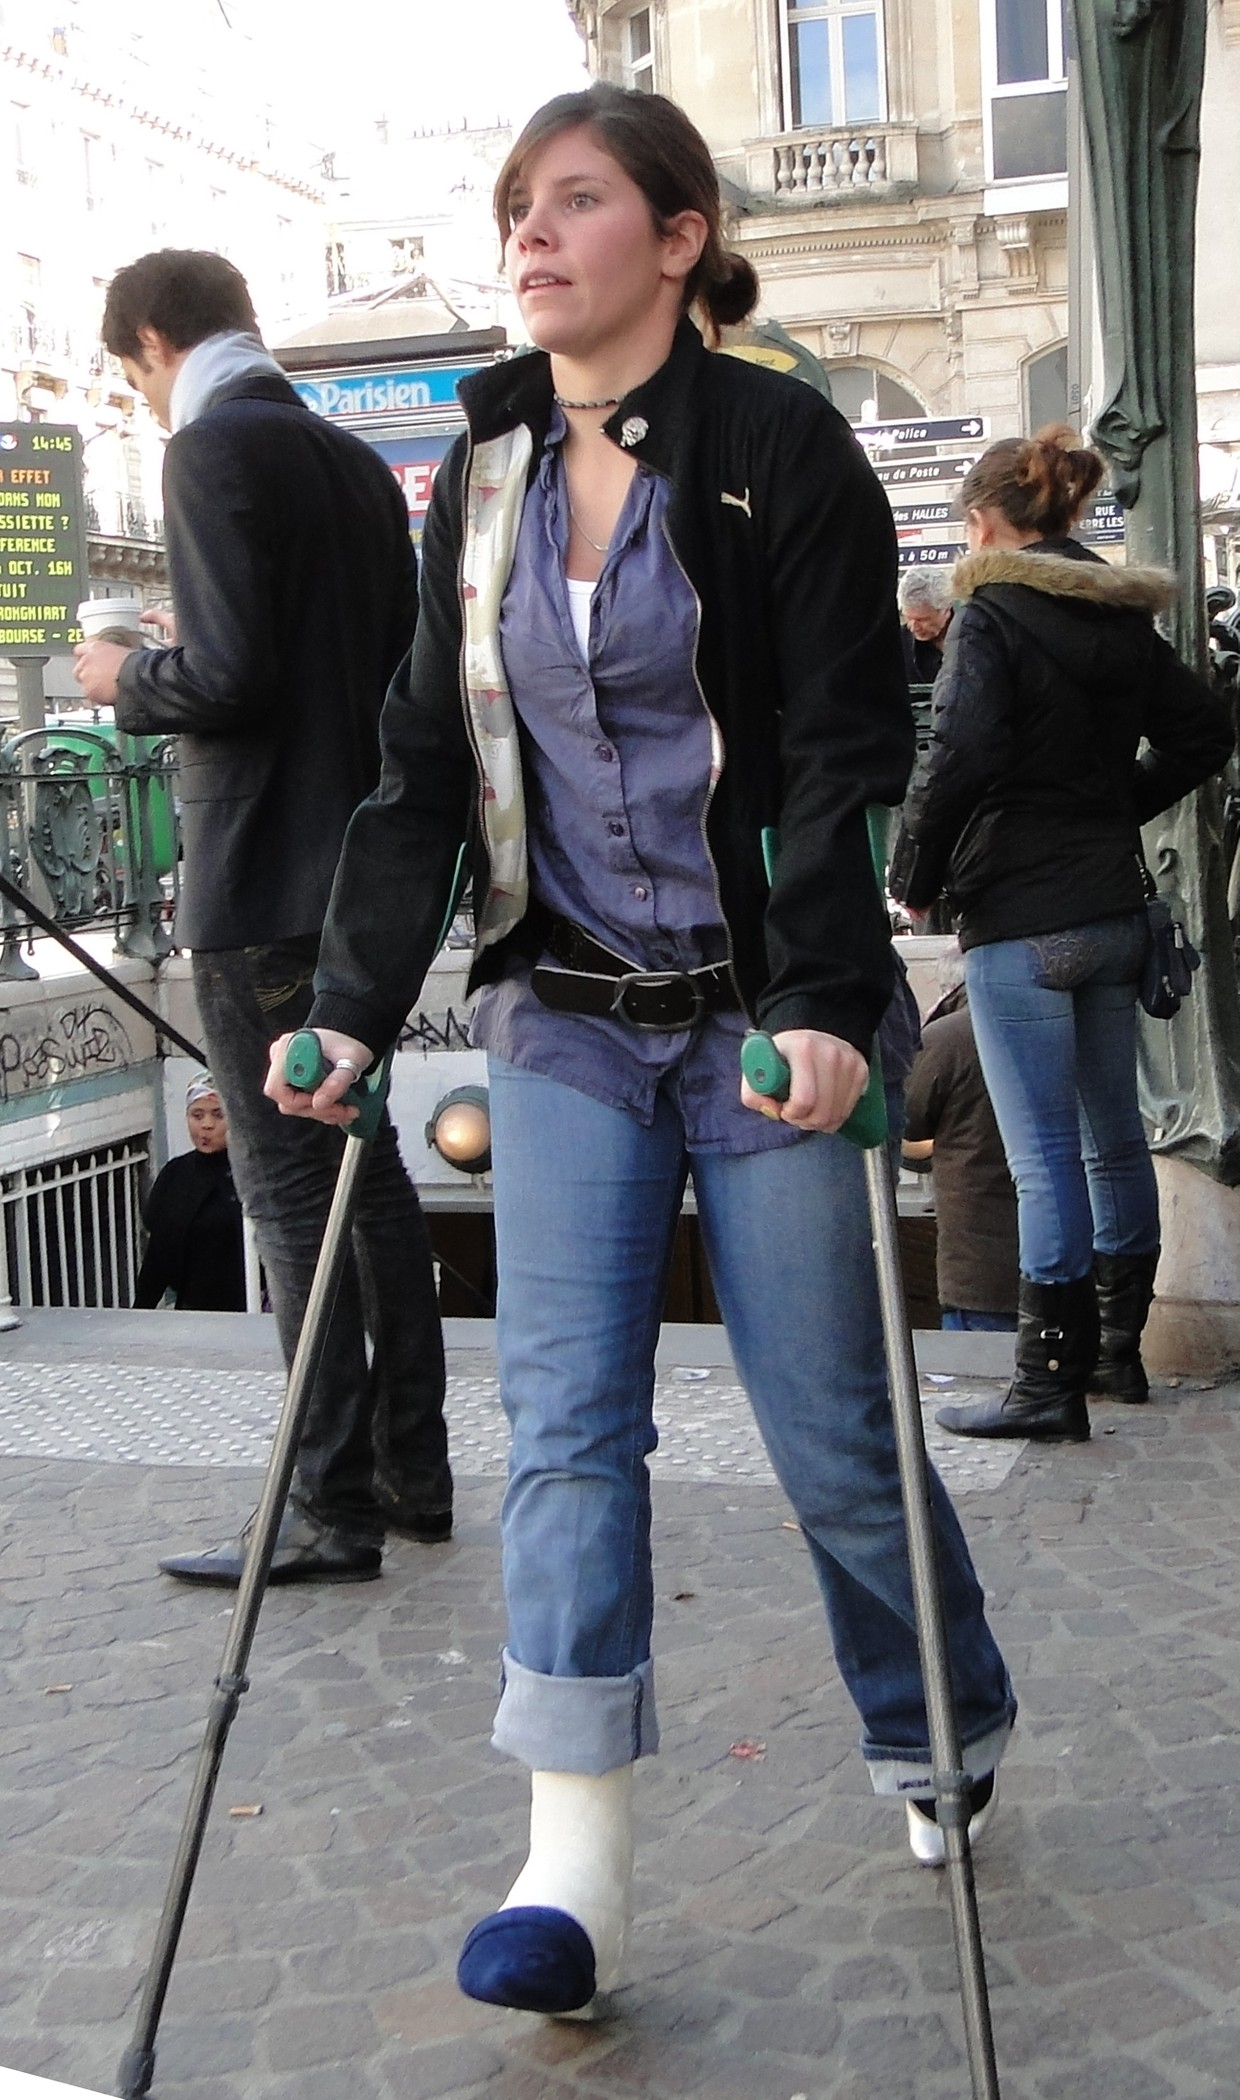 Woman with plastercast and crutches.